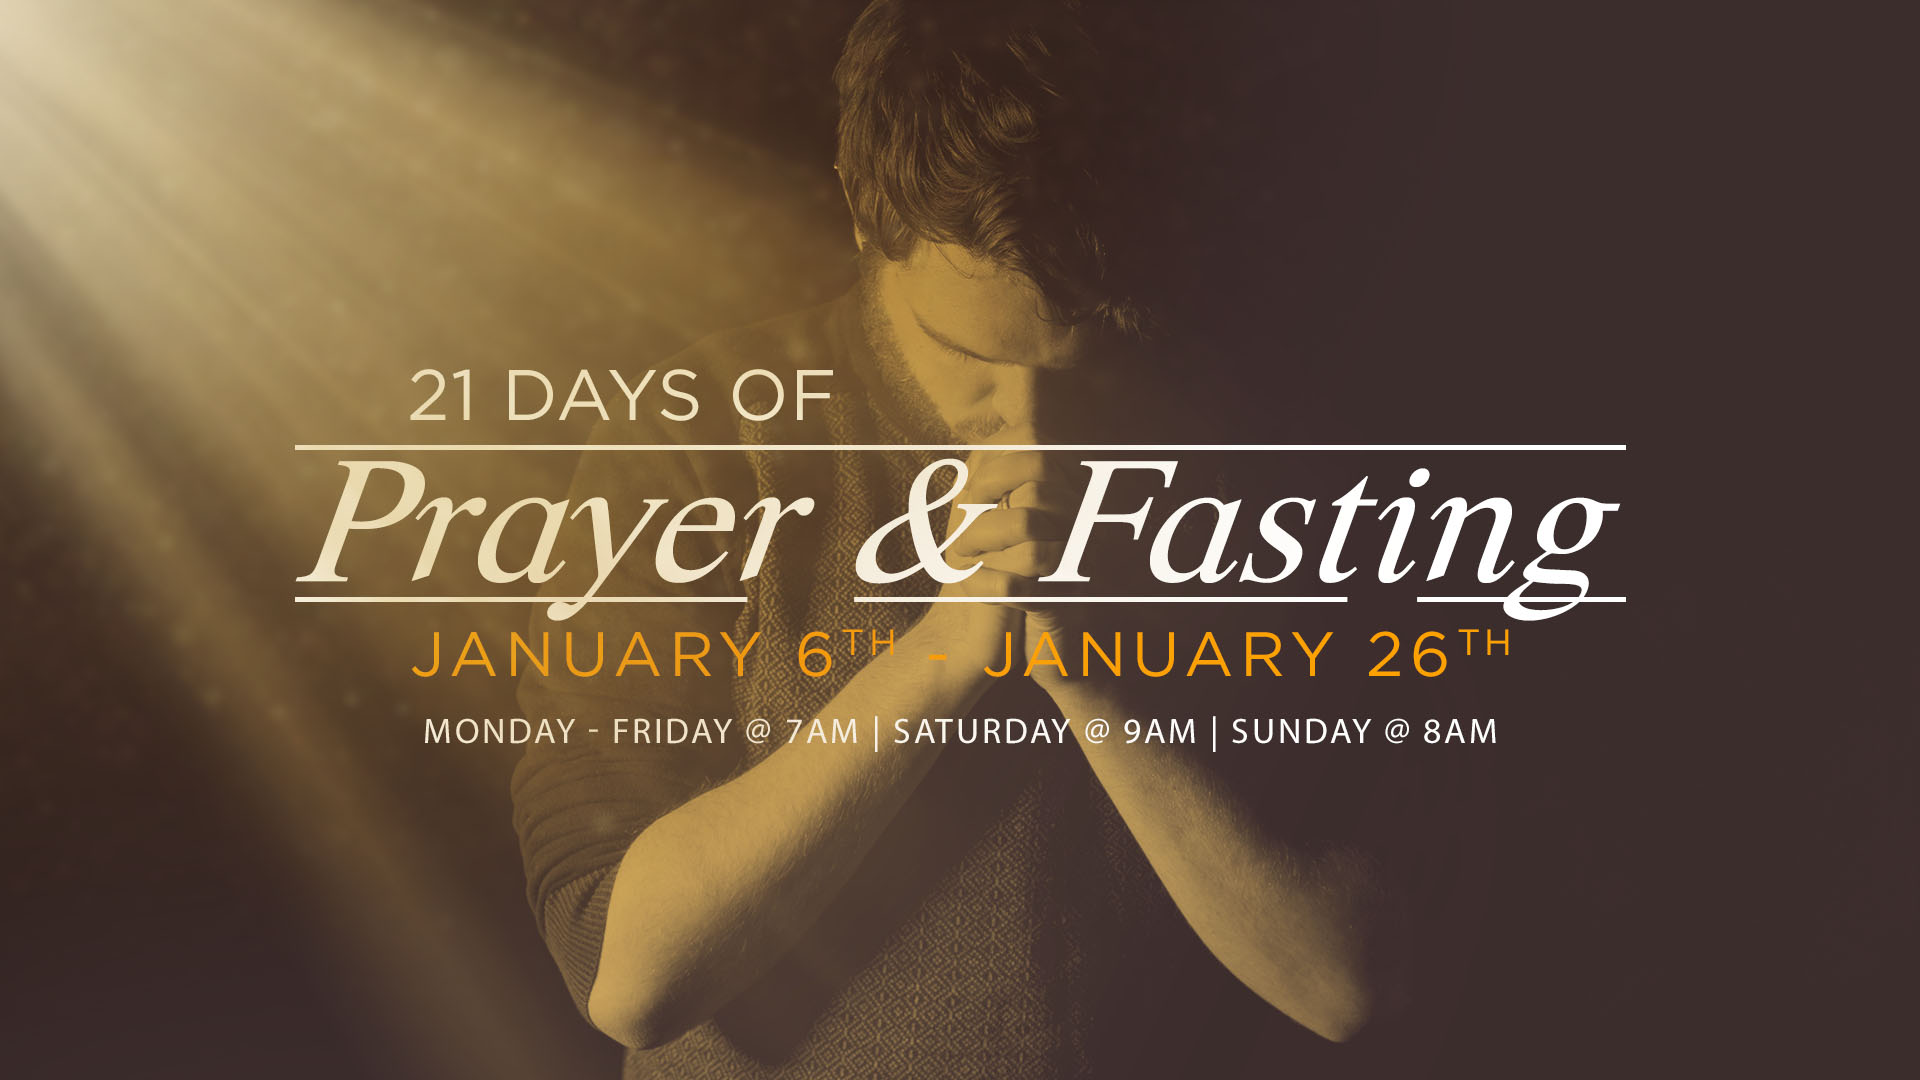 21 Days of Prayer & Fasting 2020